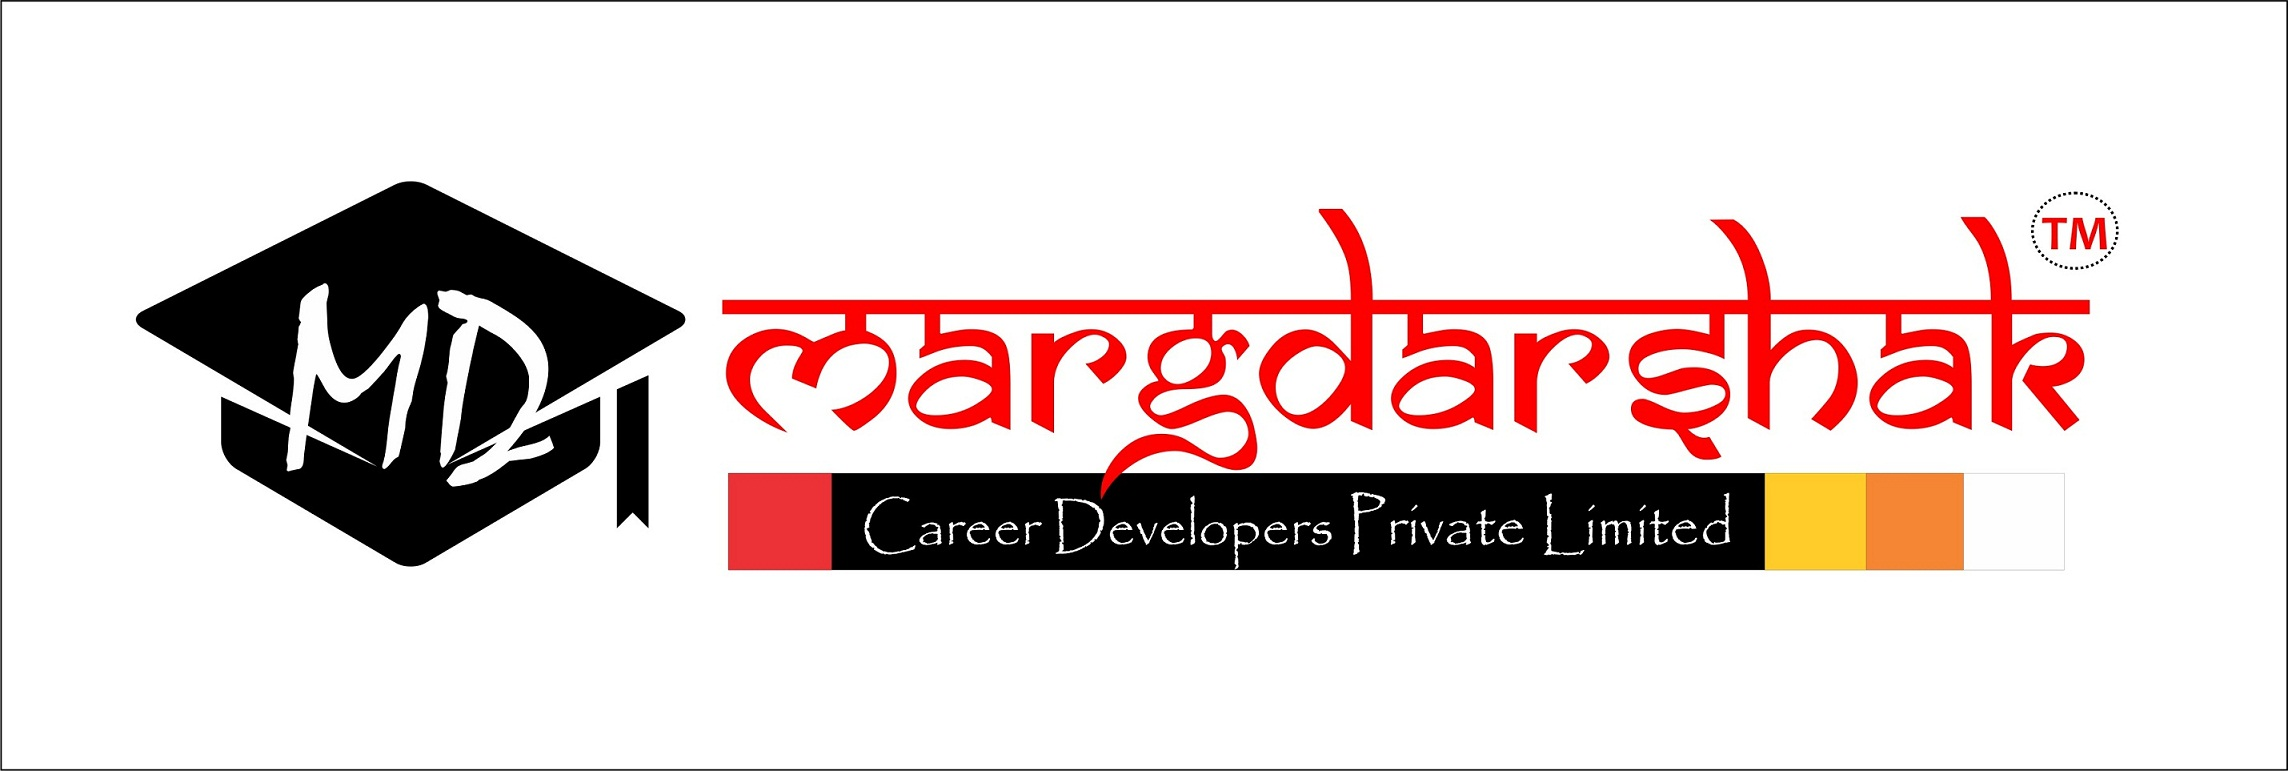 Margdarshak™ Career Developers Pvt Ltd logo